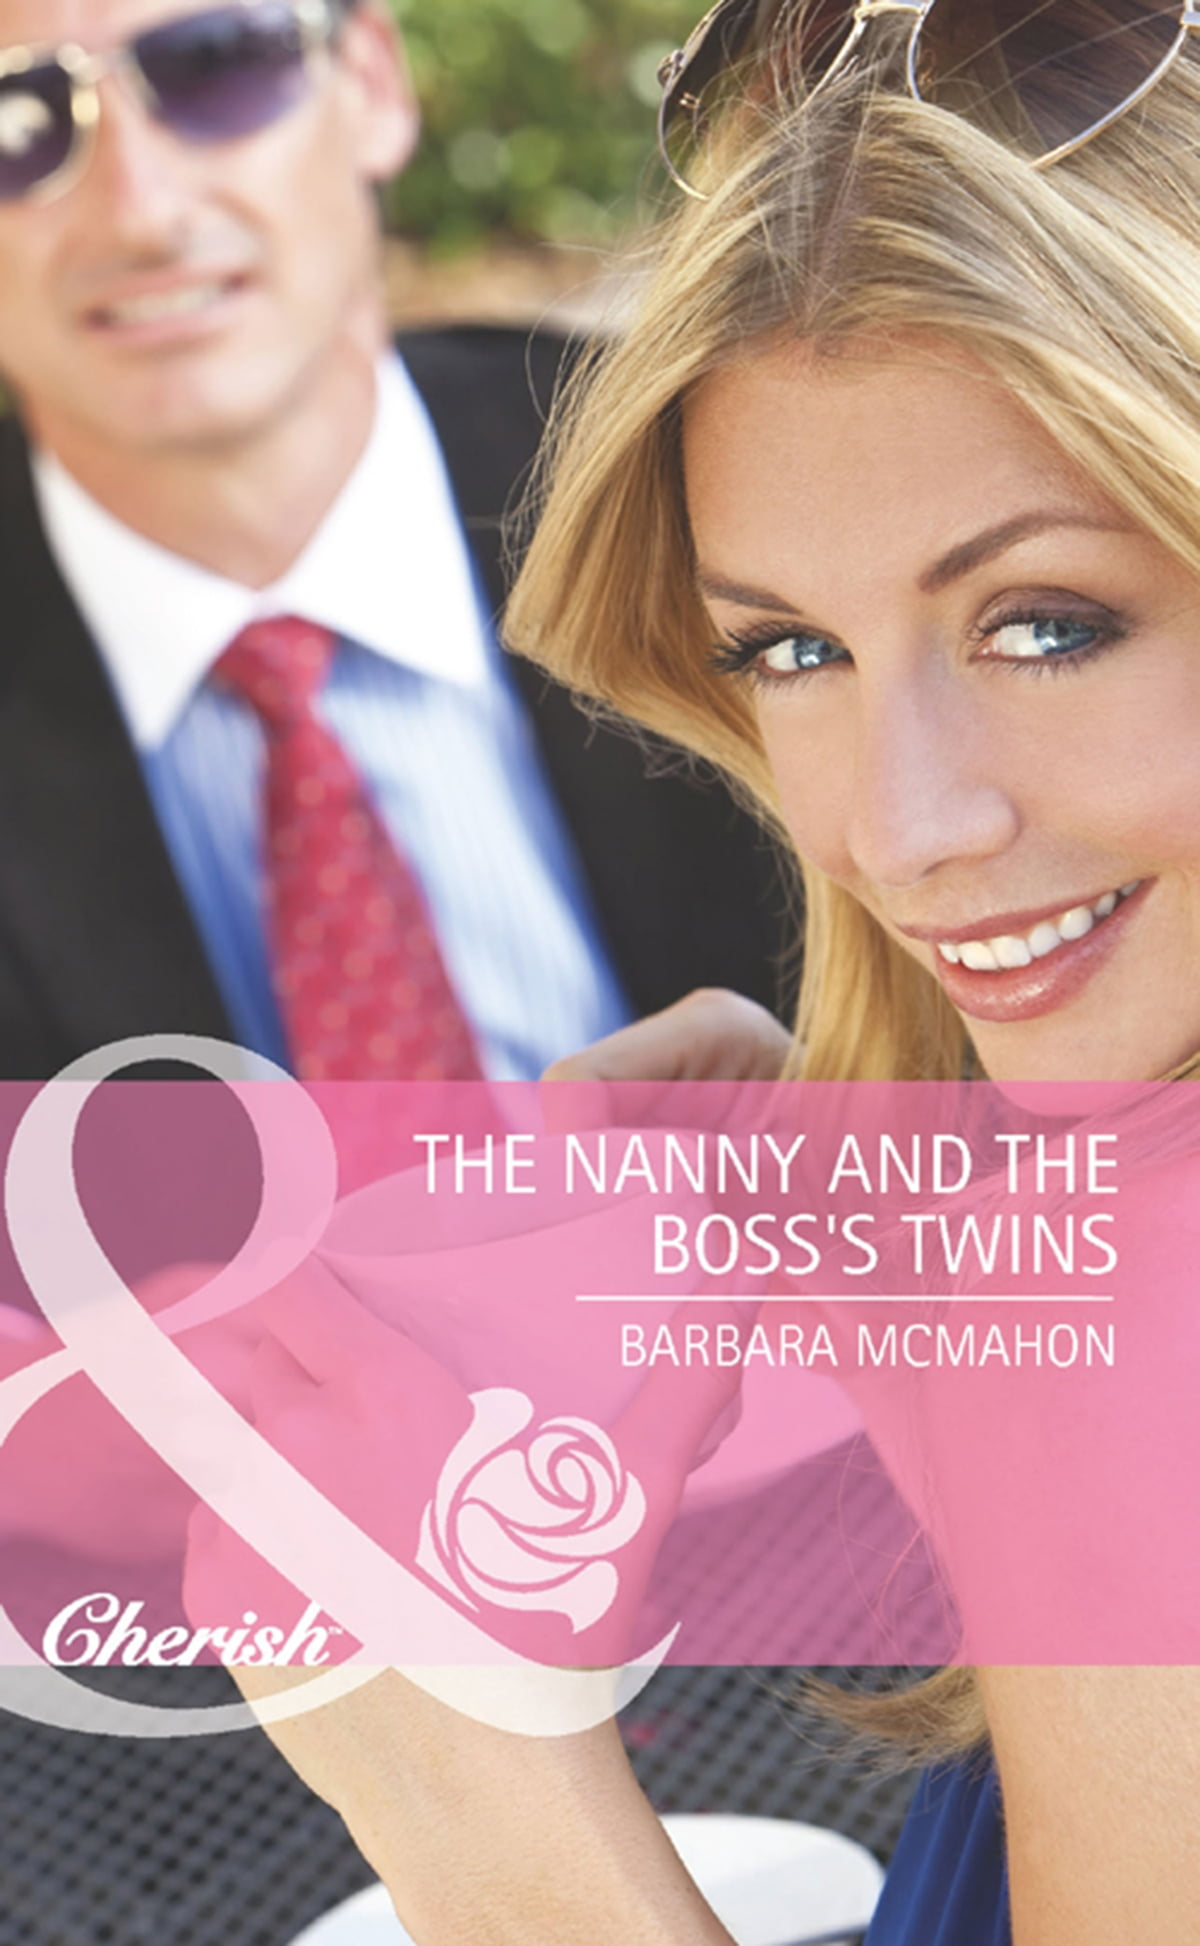 Amanda Rosa Play Boy the nanny and the boss's twins (mills & boon cherish) ebookbarbara  mcmahon - rakuten kobo